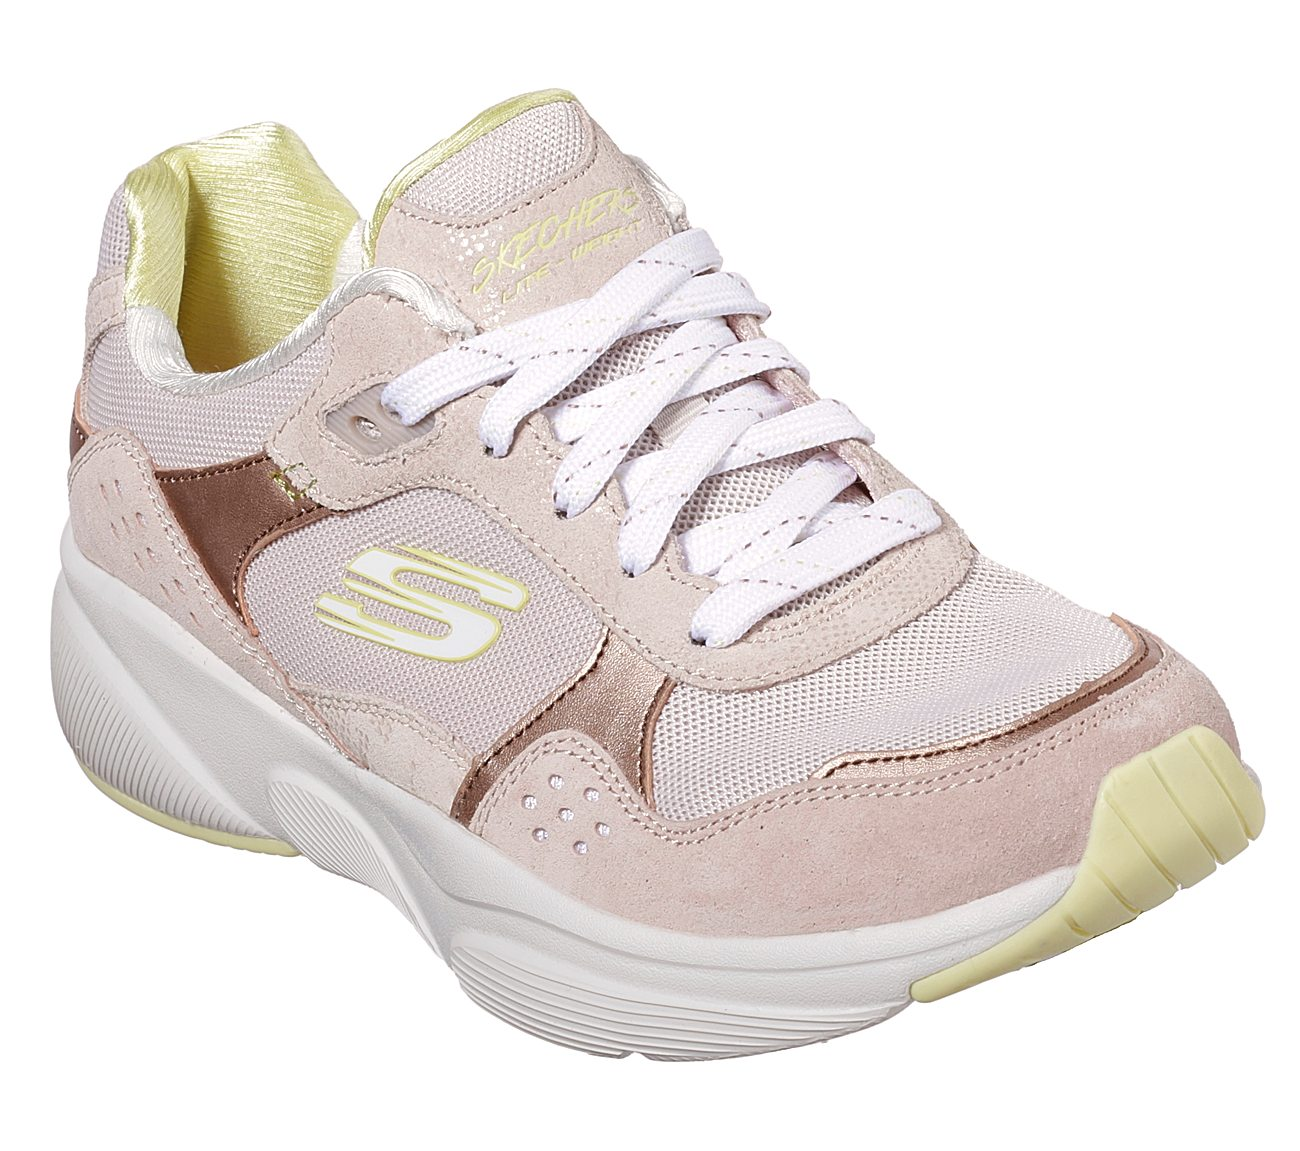 fd16622cf756 Buy SKECHERS Meridian - No Worries Walking Shoes Shoes only  70.00